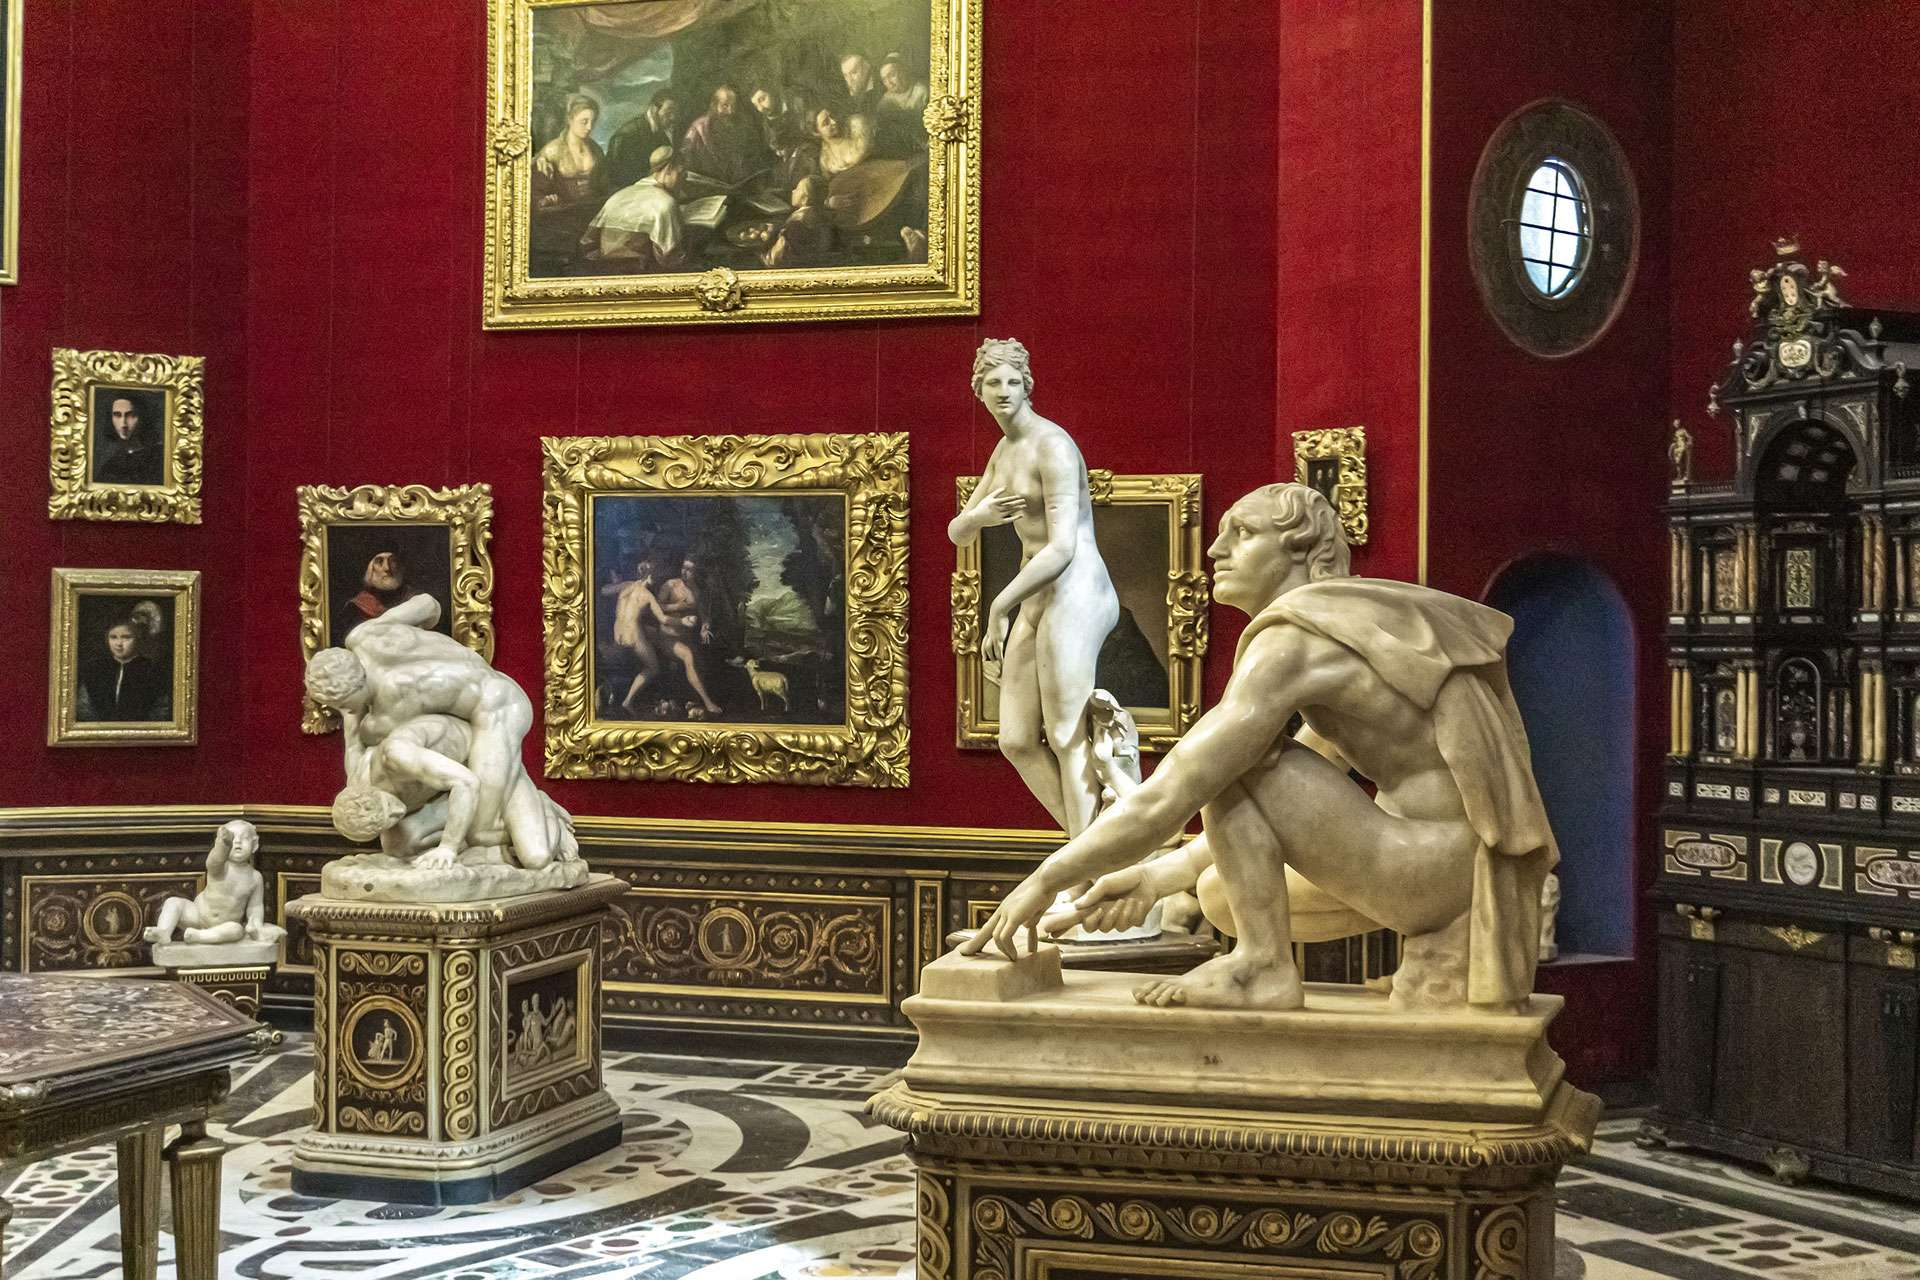 The Art Lover's Advice for Florence